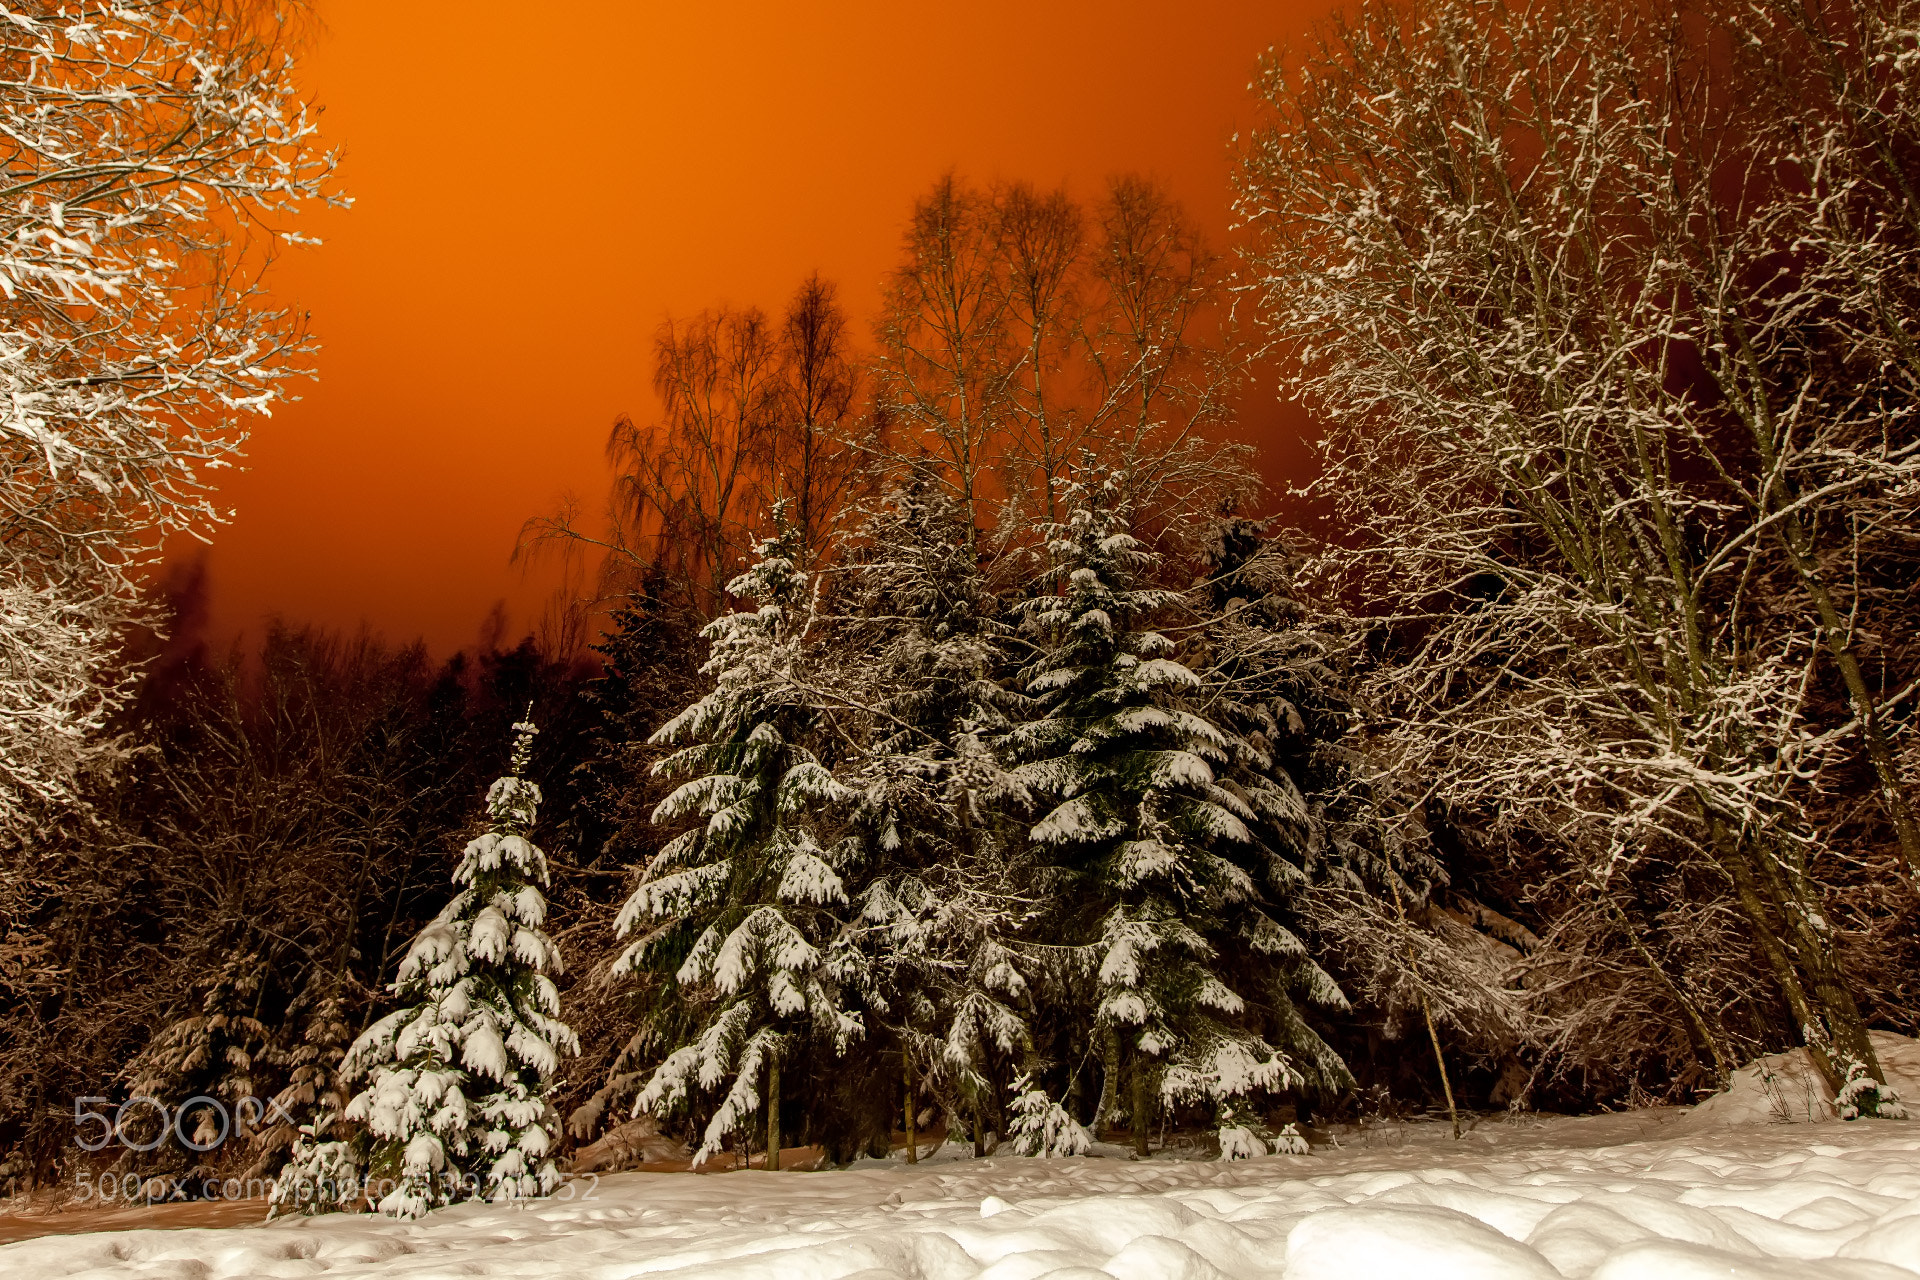 Photograph Forests of Belarus by Vasiliy Stepanovskiy on 500px